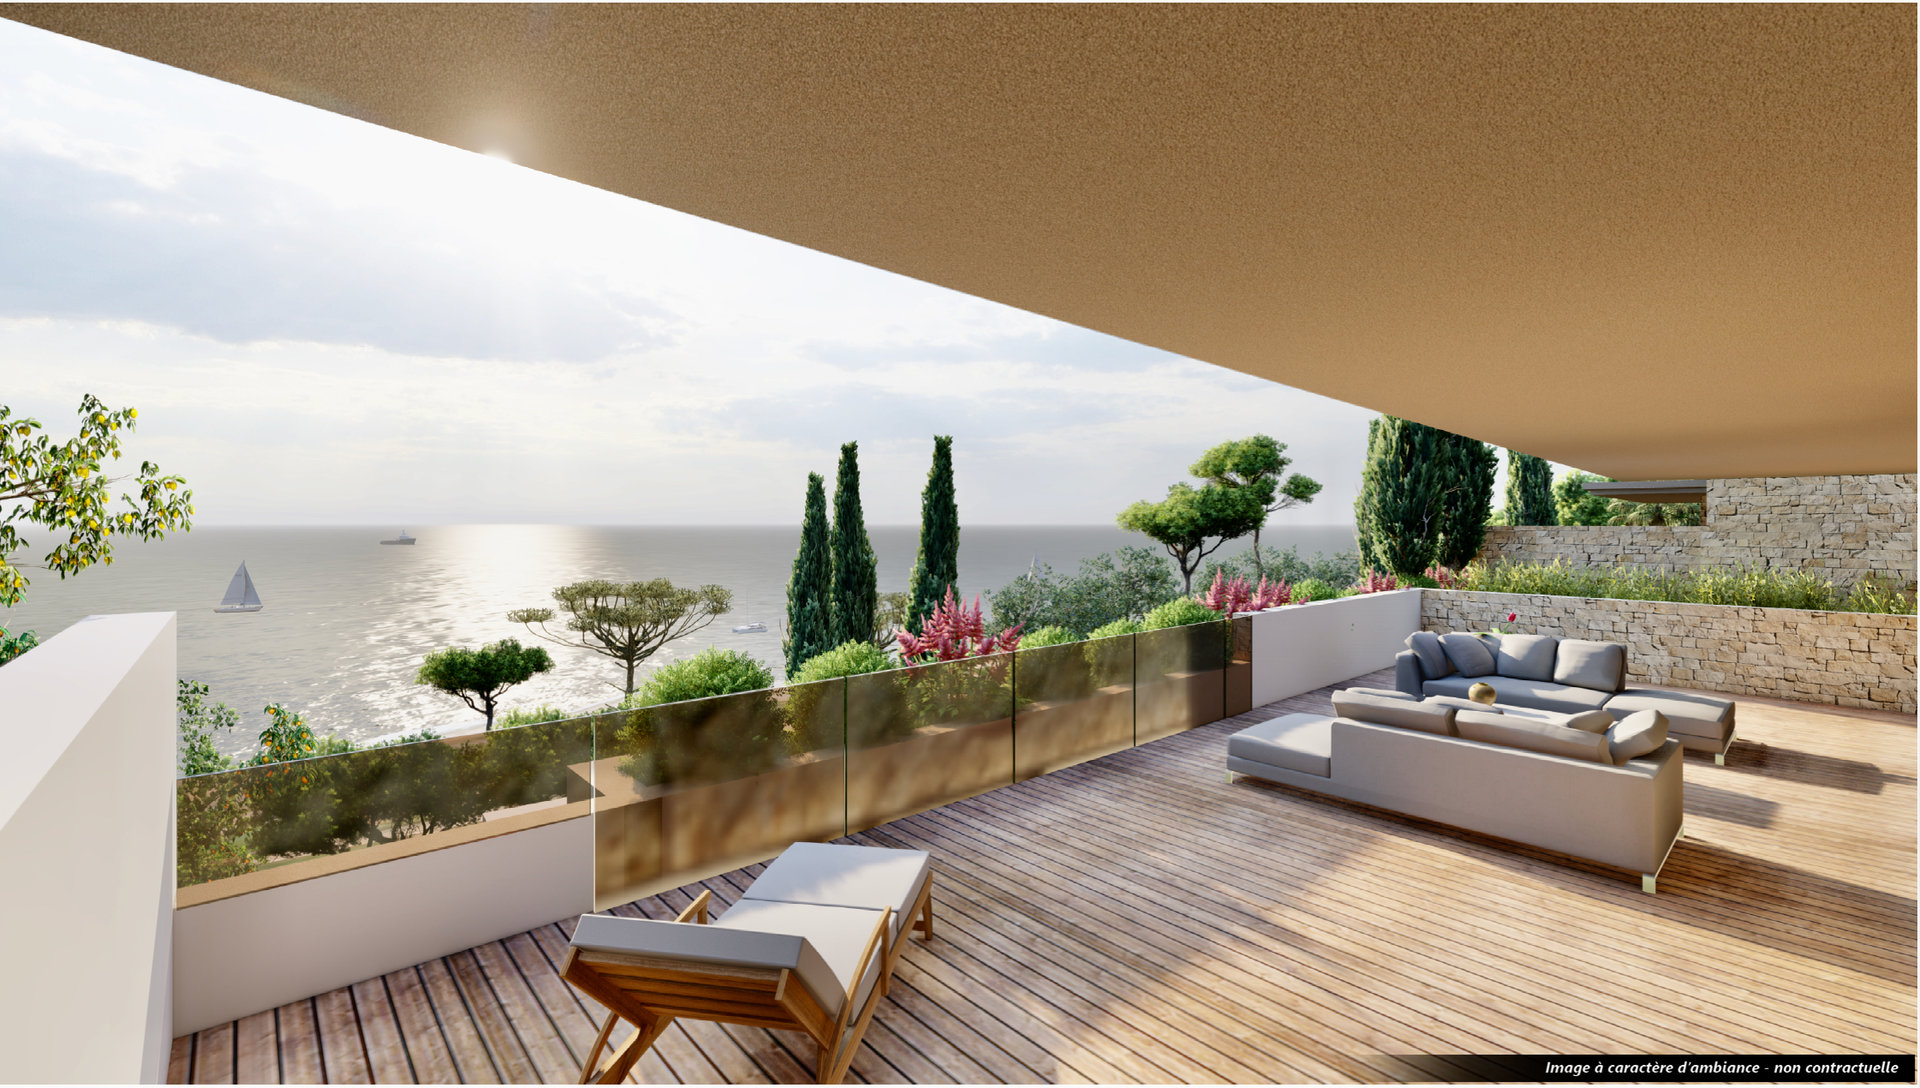 Les Issambres - 94,5 m2 new construction high standing apartment with great sea-view